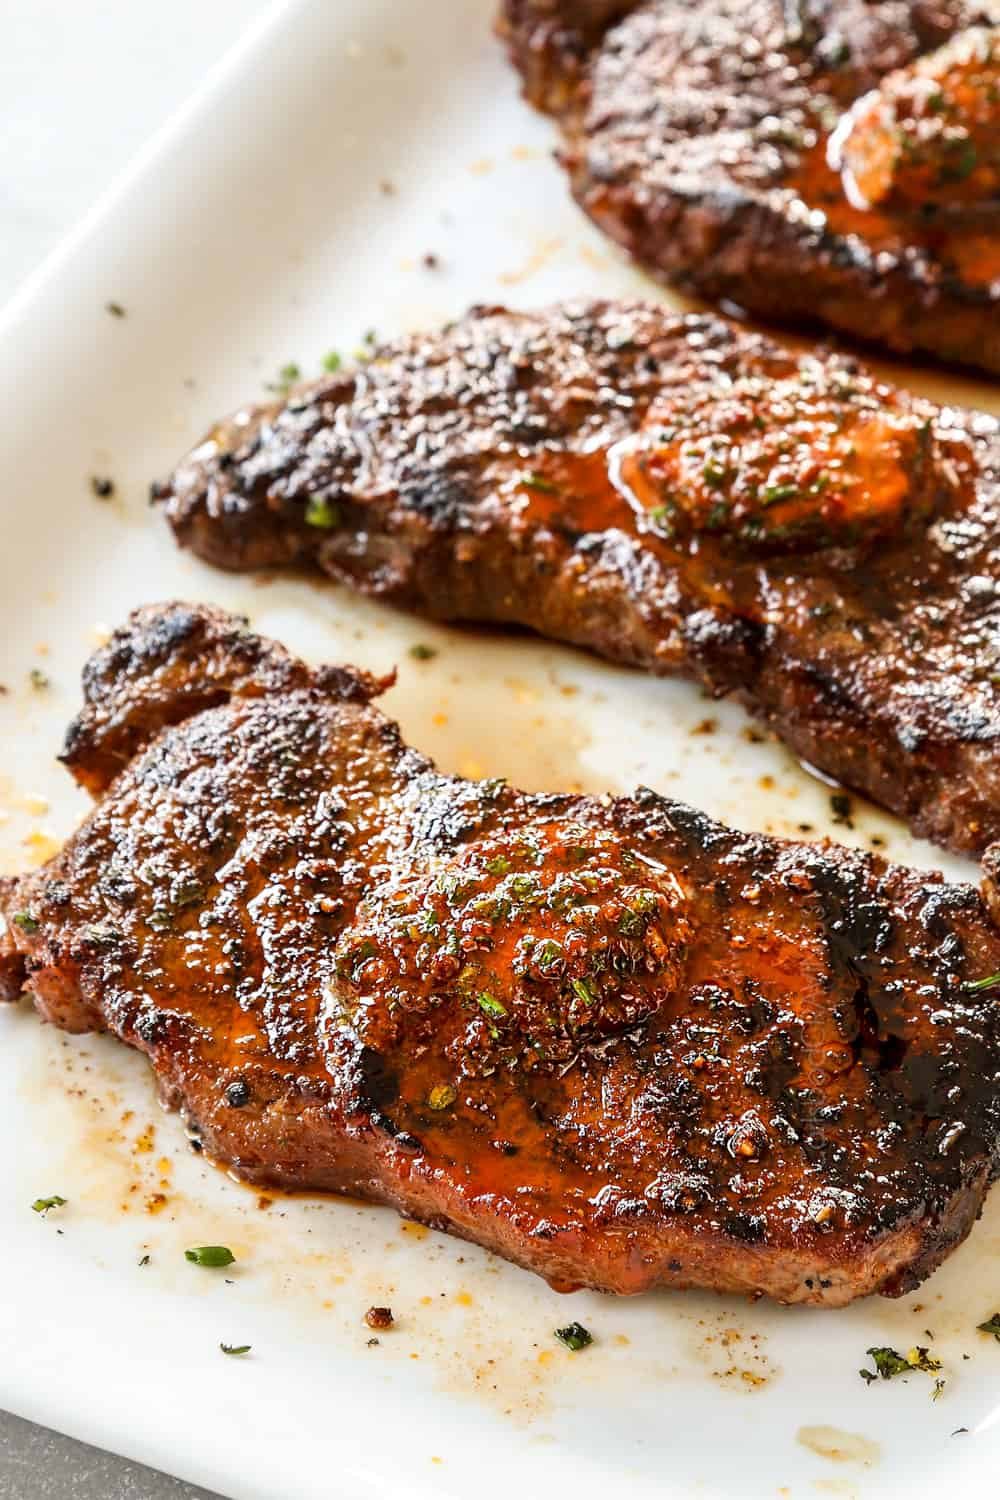 showing how to make New York Strip Steak (Strip Steak, NY Strip Steak) by adding compound butter to the top of the steaks